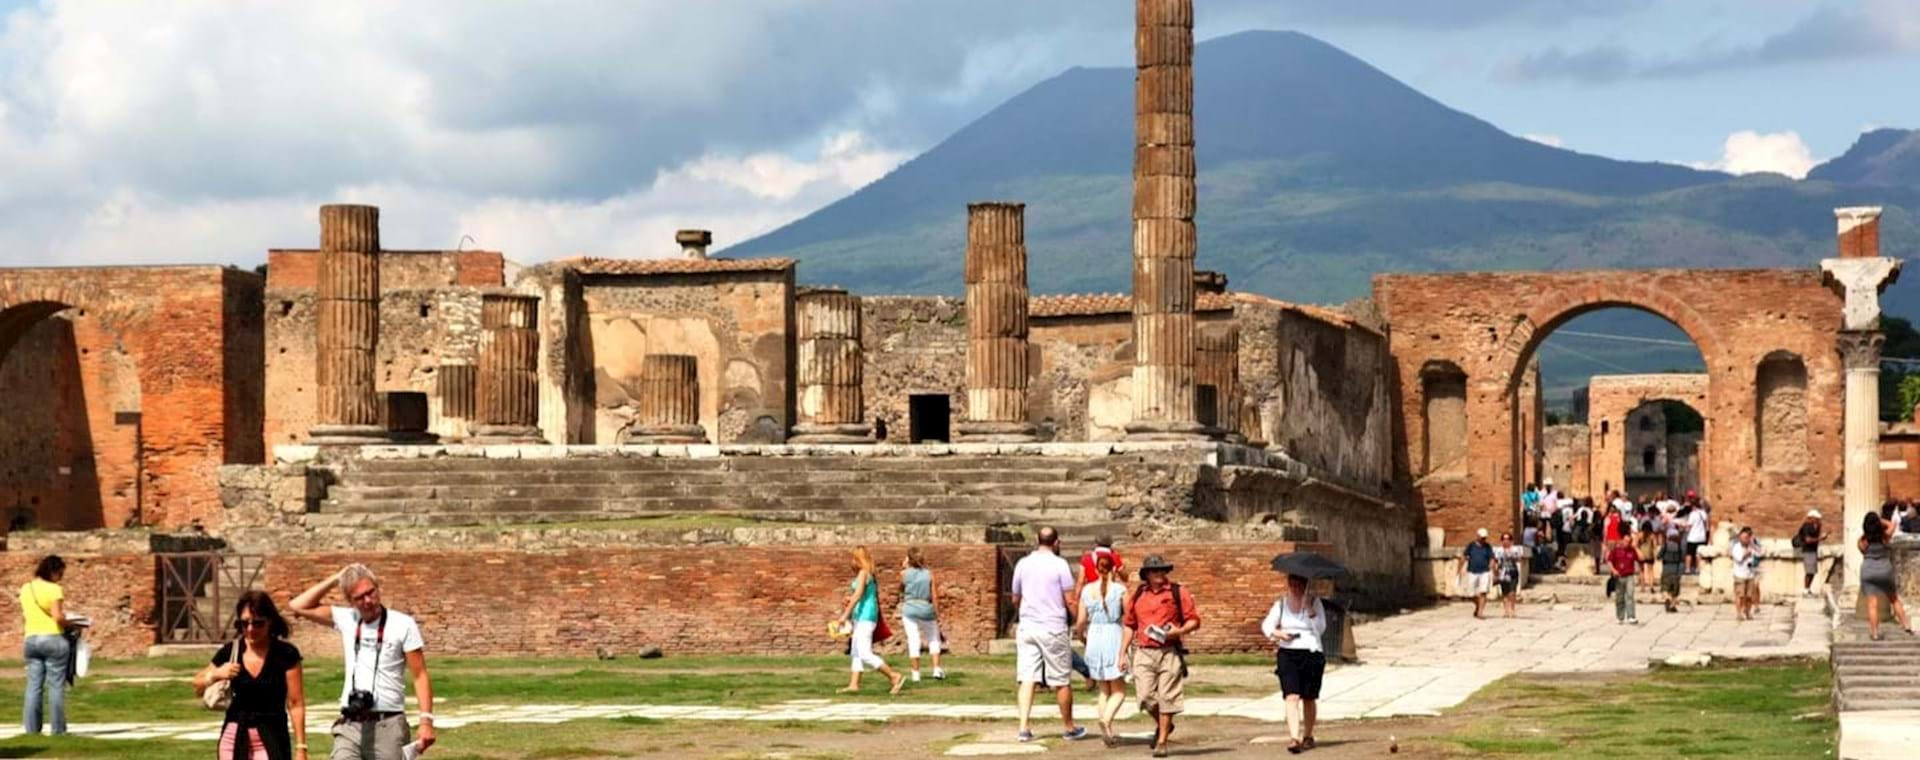 Full Day VIP Pompeii and Sorrento Small Group Tour from Rome